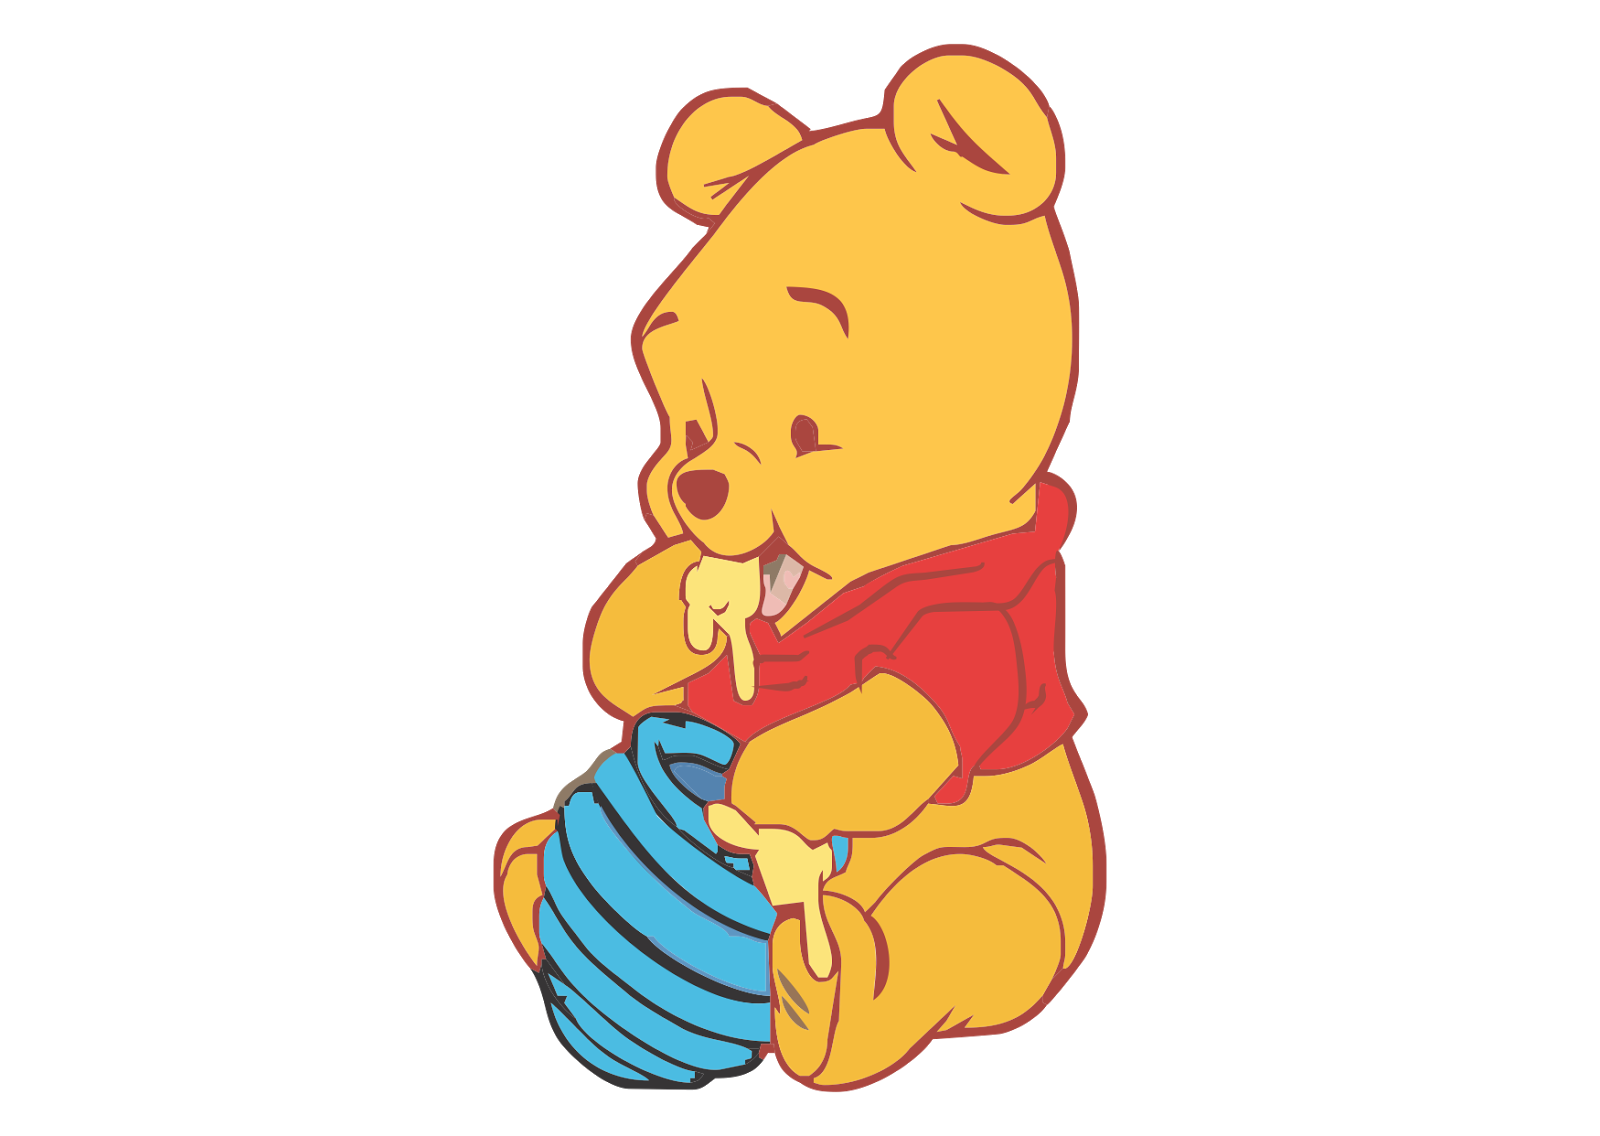 Winnie The Pooh  - Baby PNG Image